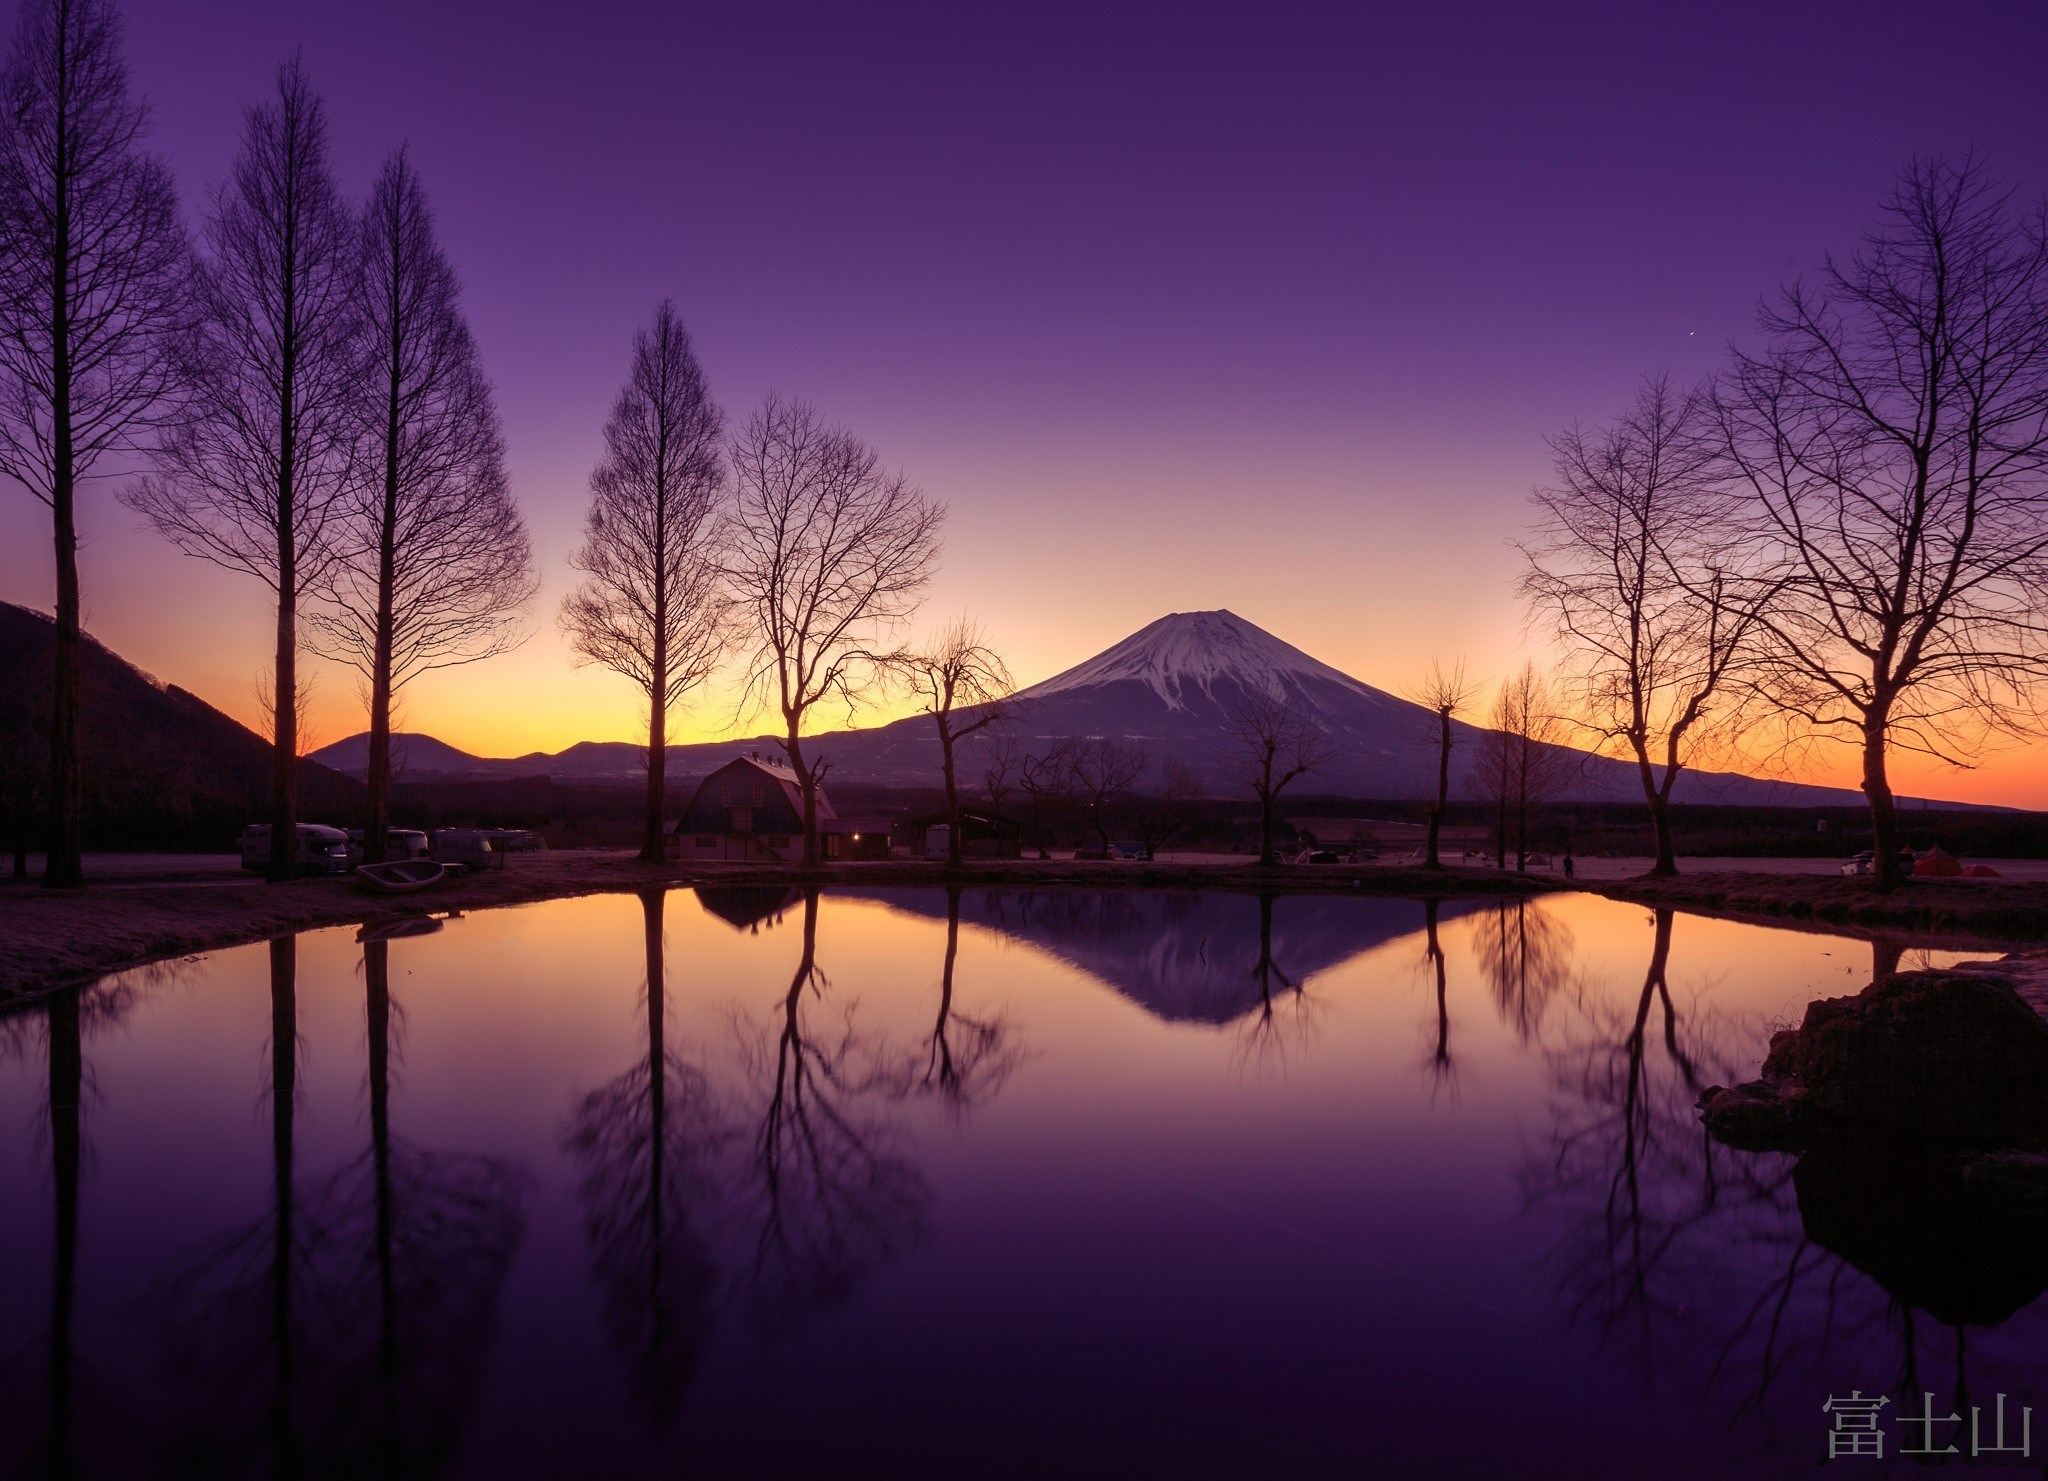 2048x1481 wallpaper and screensavers for mount fuji 2048x1481